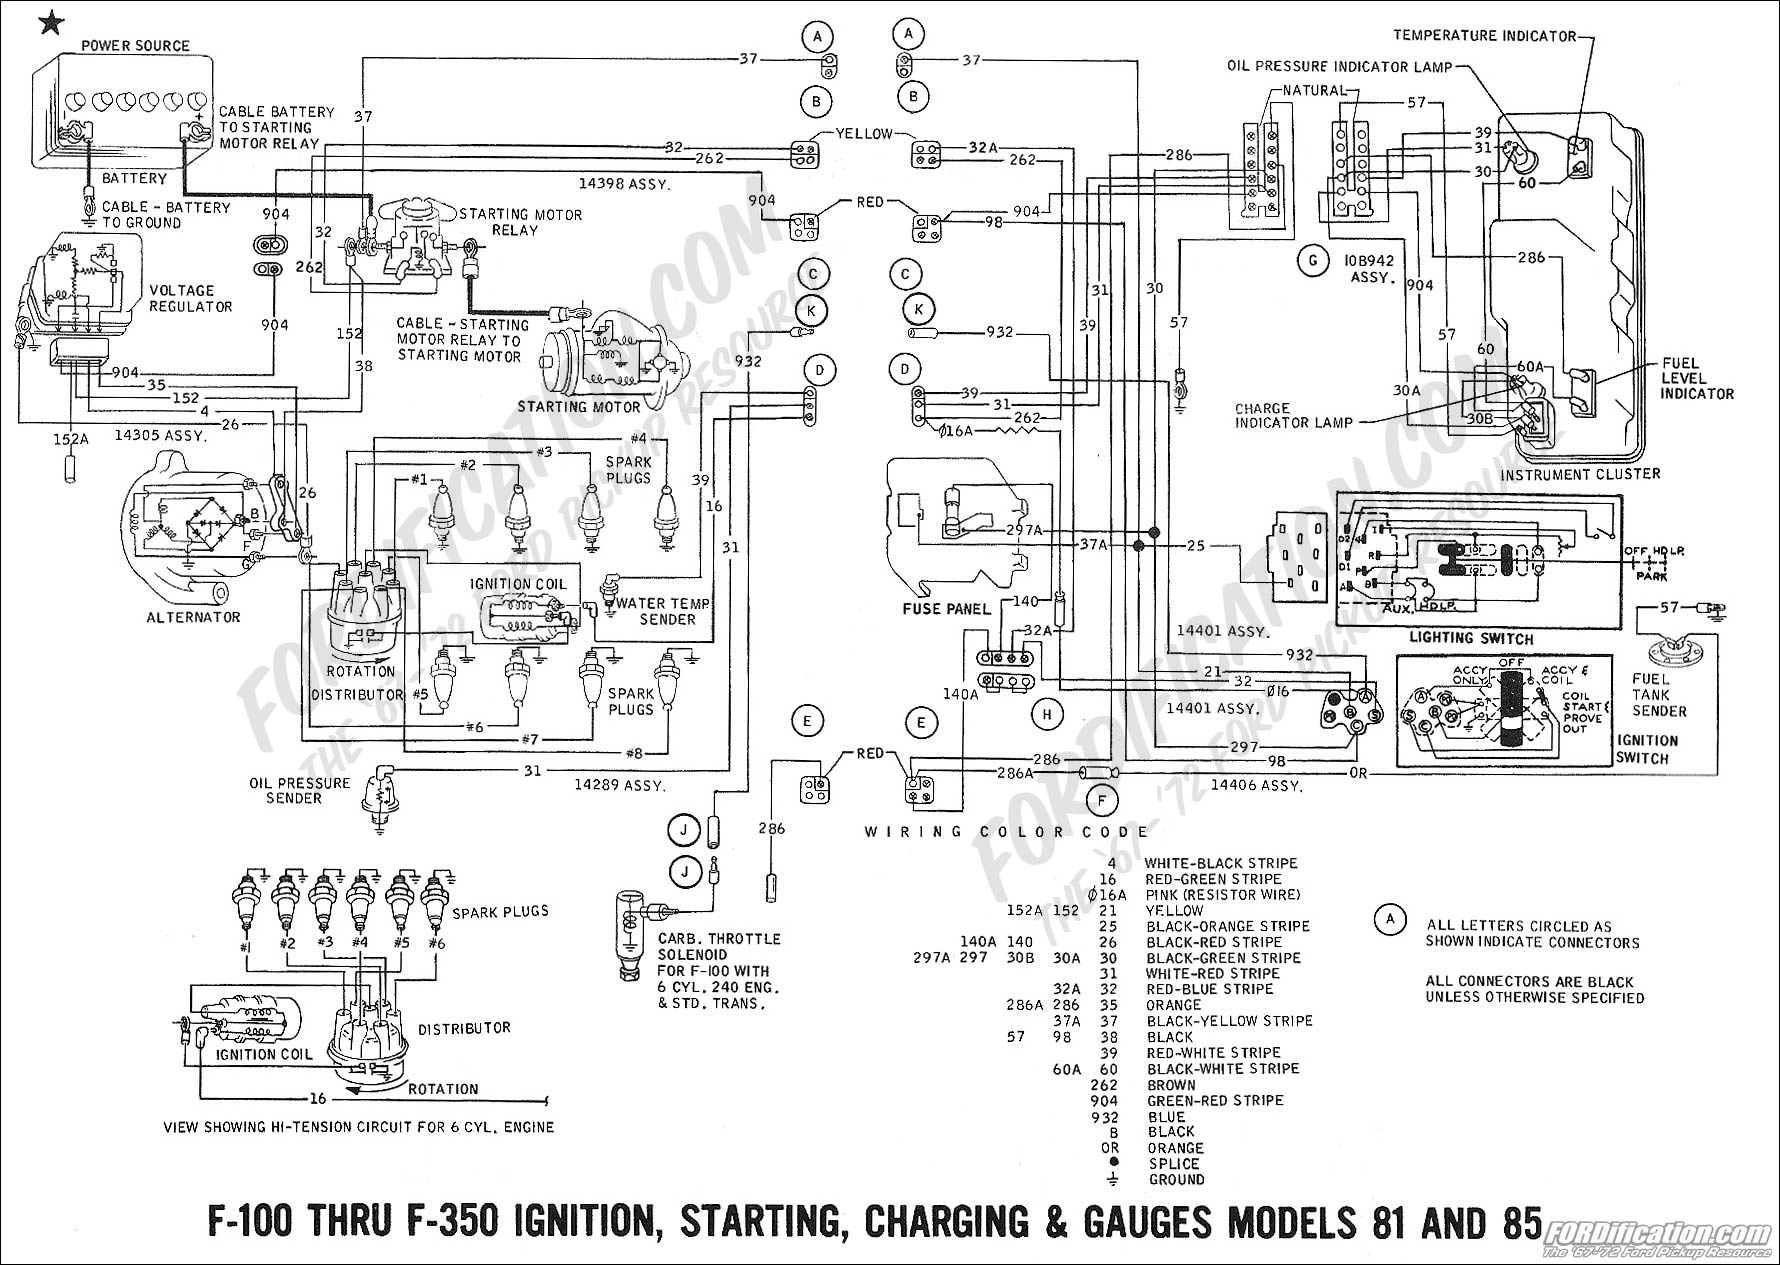 82 Mustang Wiring Diagram